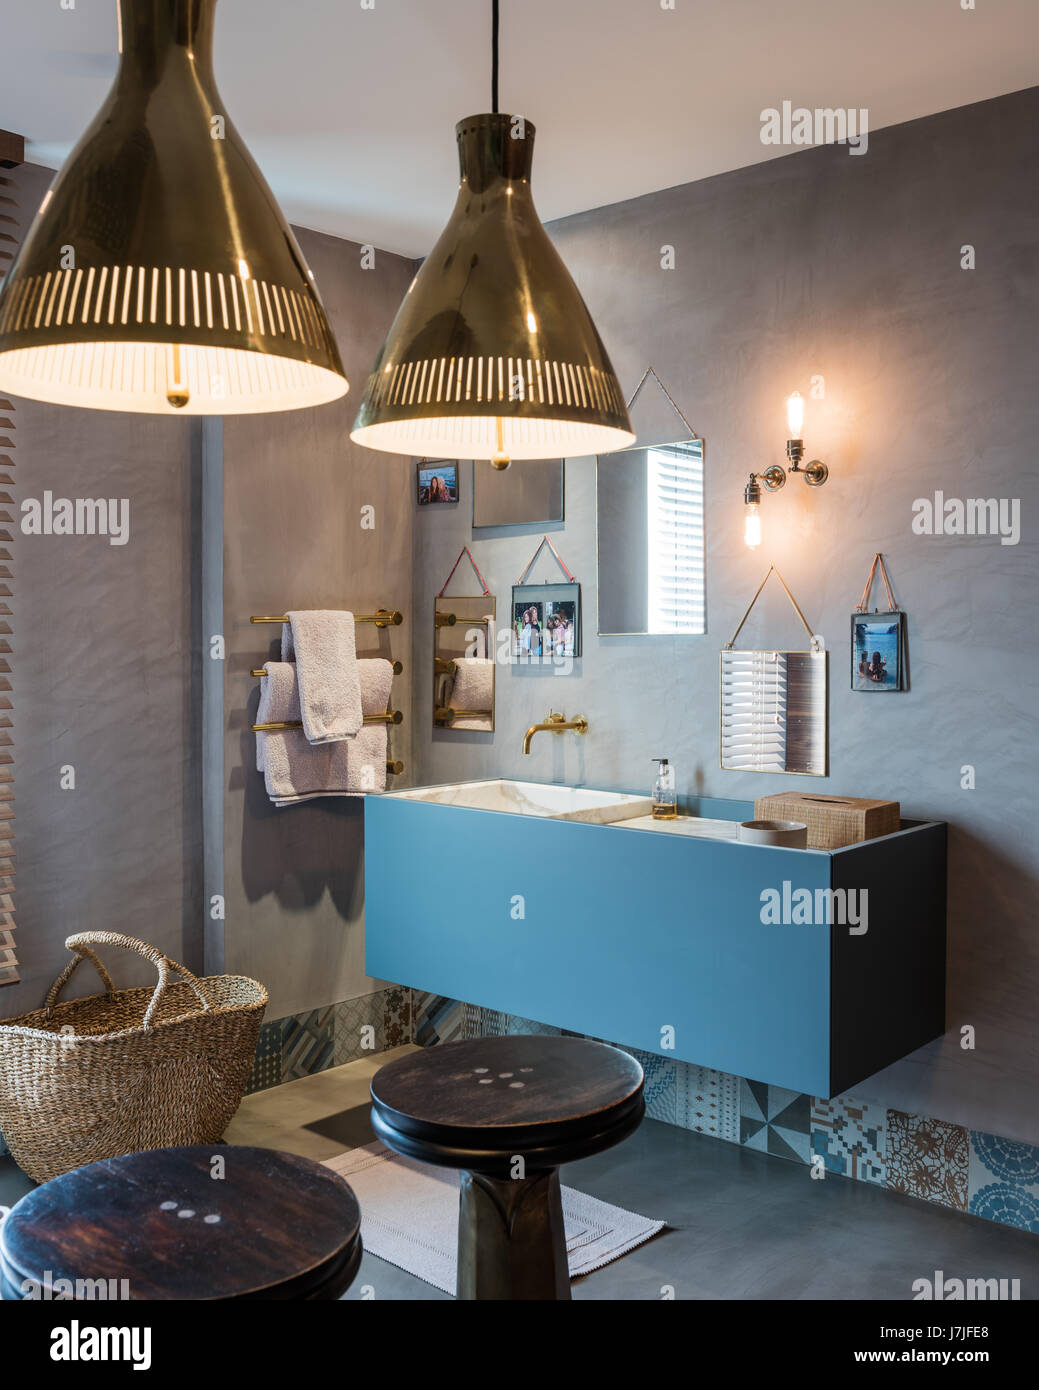 Pair of matching pendant lights in bathroom with assorted mirrors above washstand - Stock Image